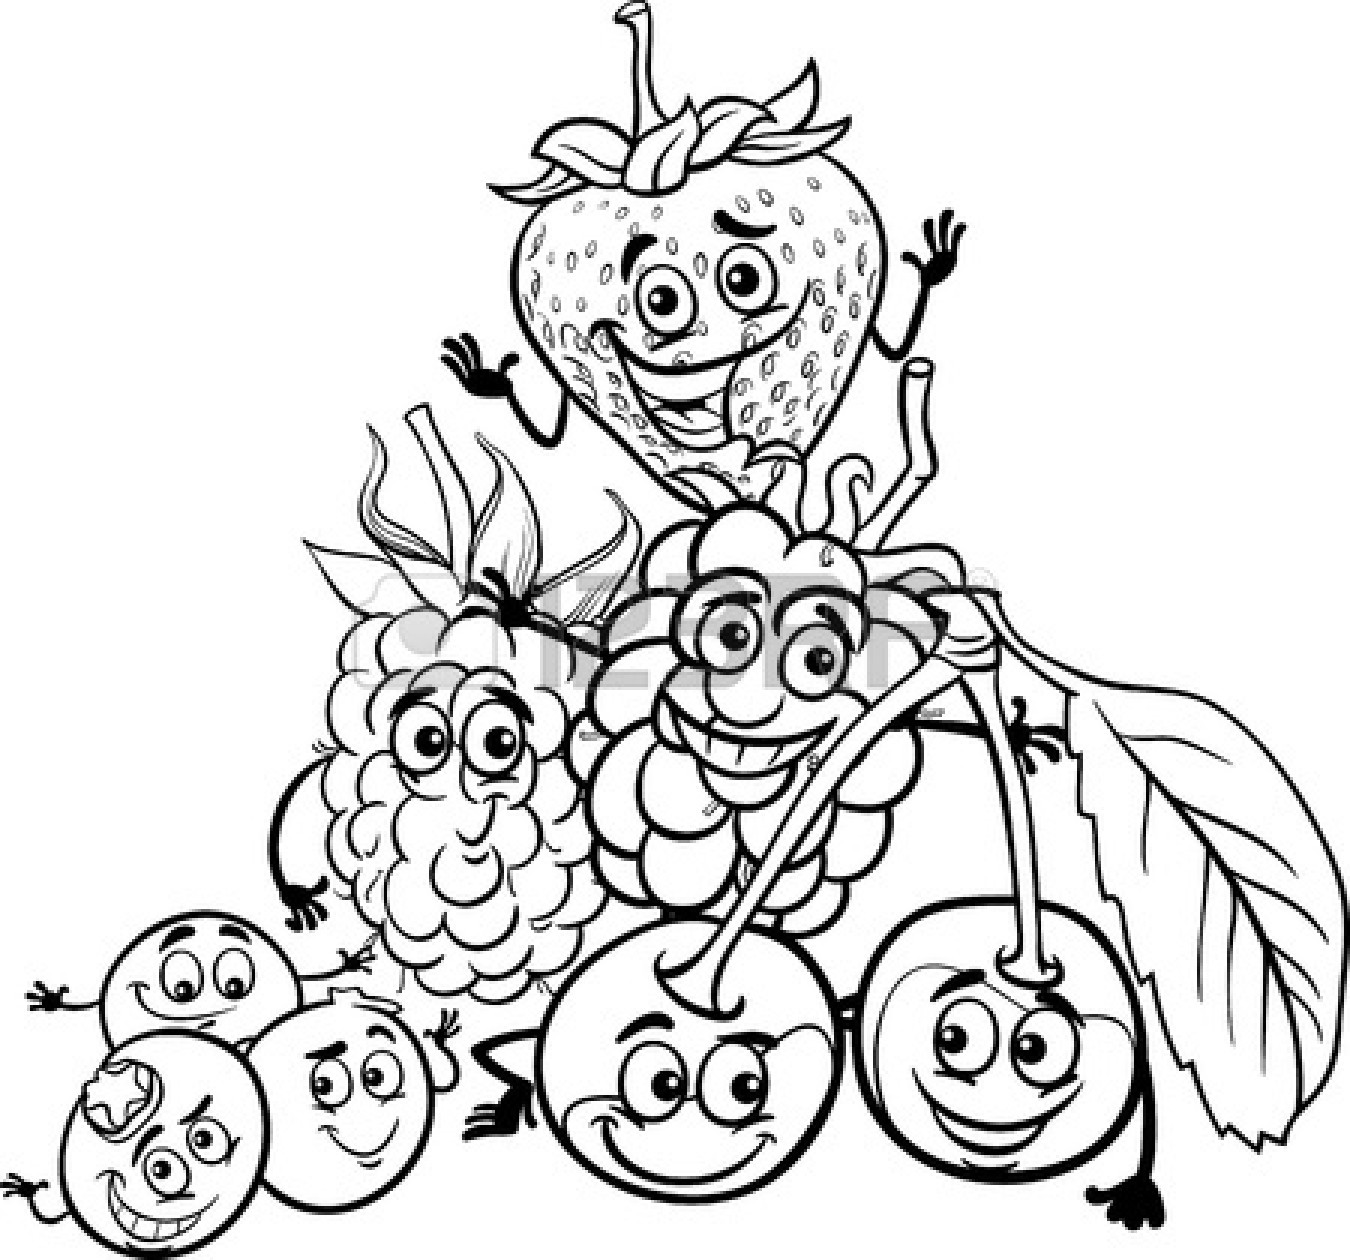 Food Black And White Clipart - Clipart Kid